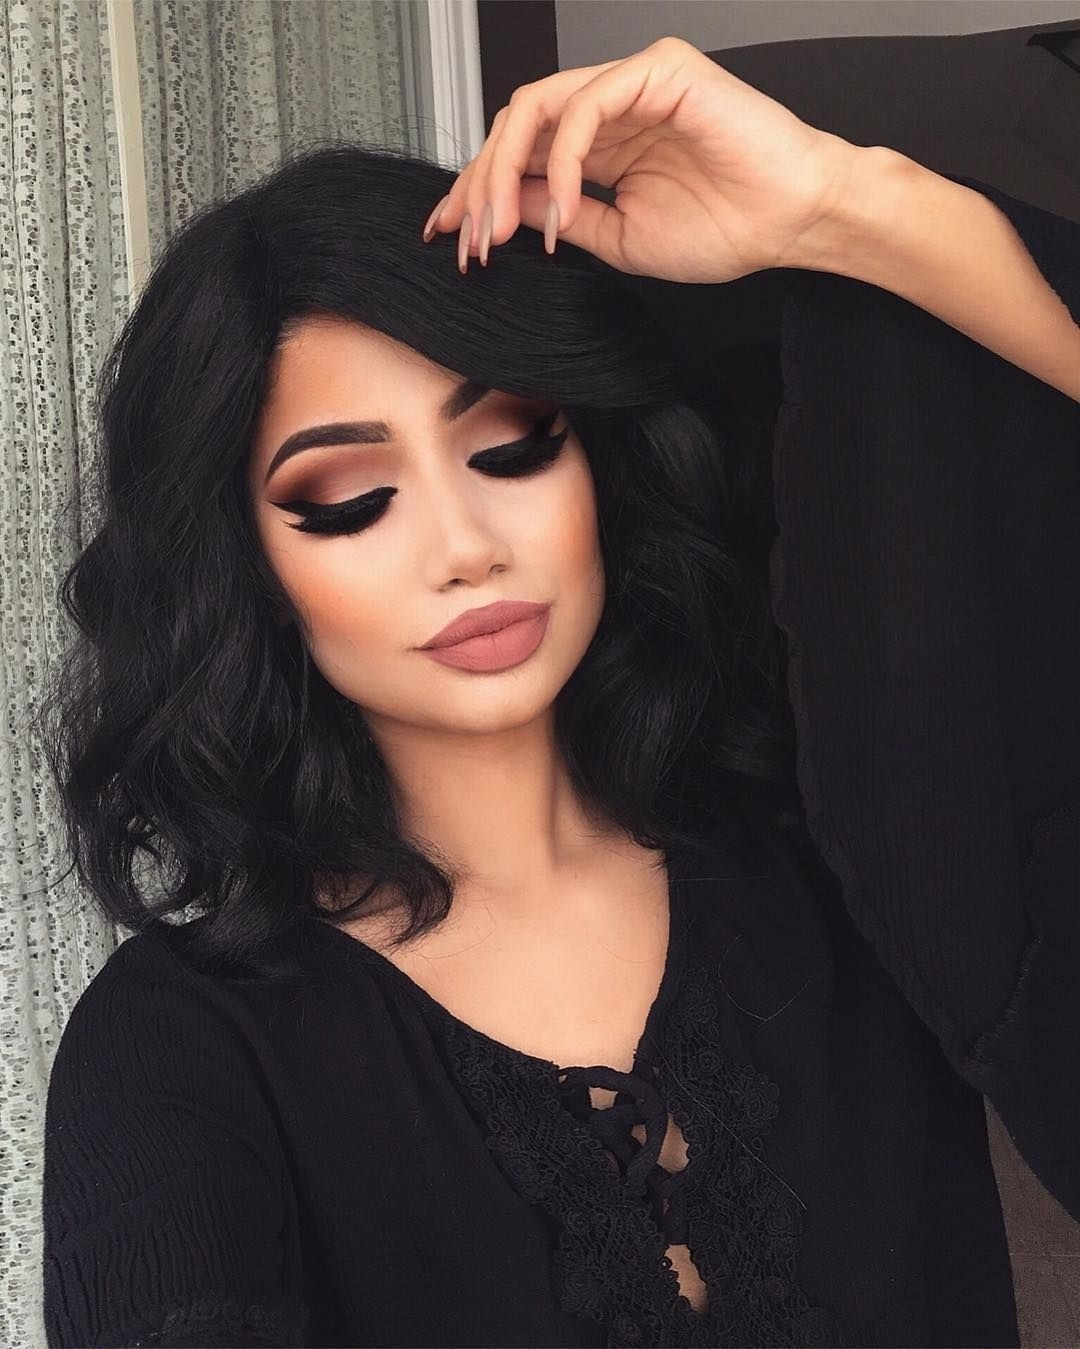 Pin By Rose Rossi On Hair Flare   Pinterest   Makeup, Makeup Looks throughout Makeup Ideas For Brown Eyes And Black Hair